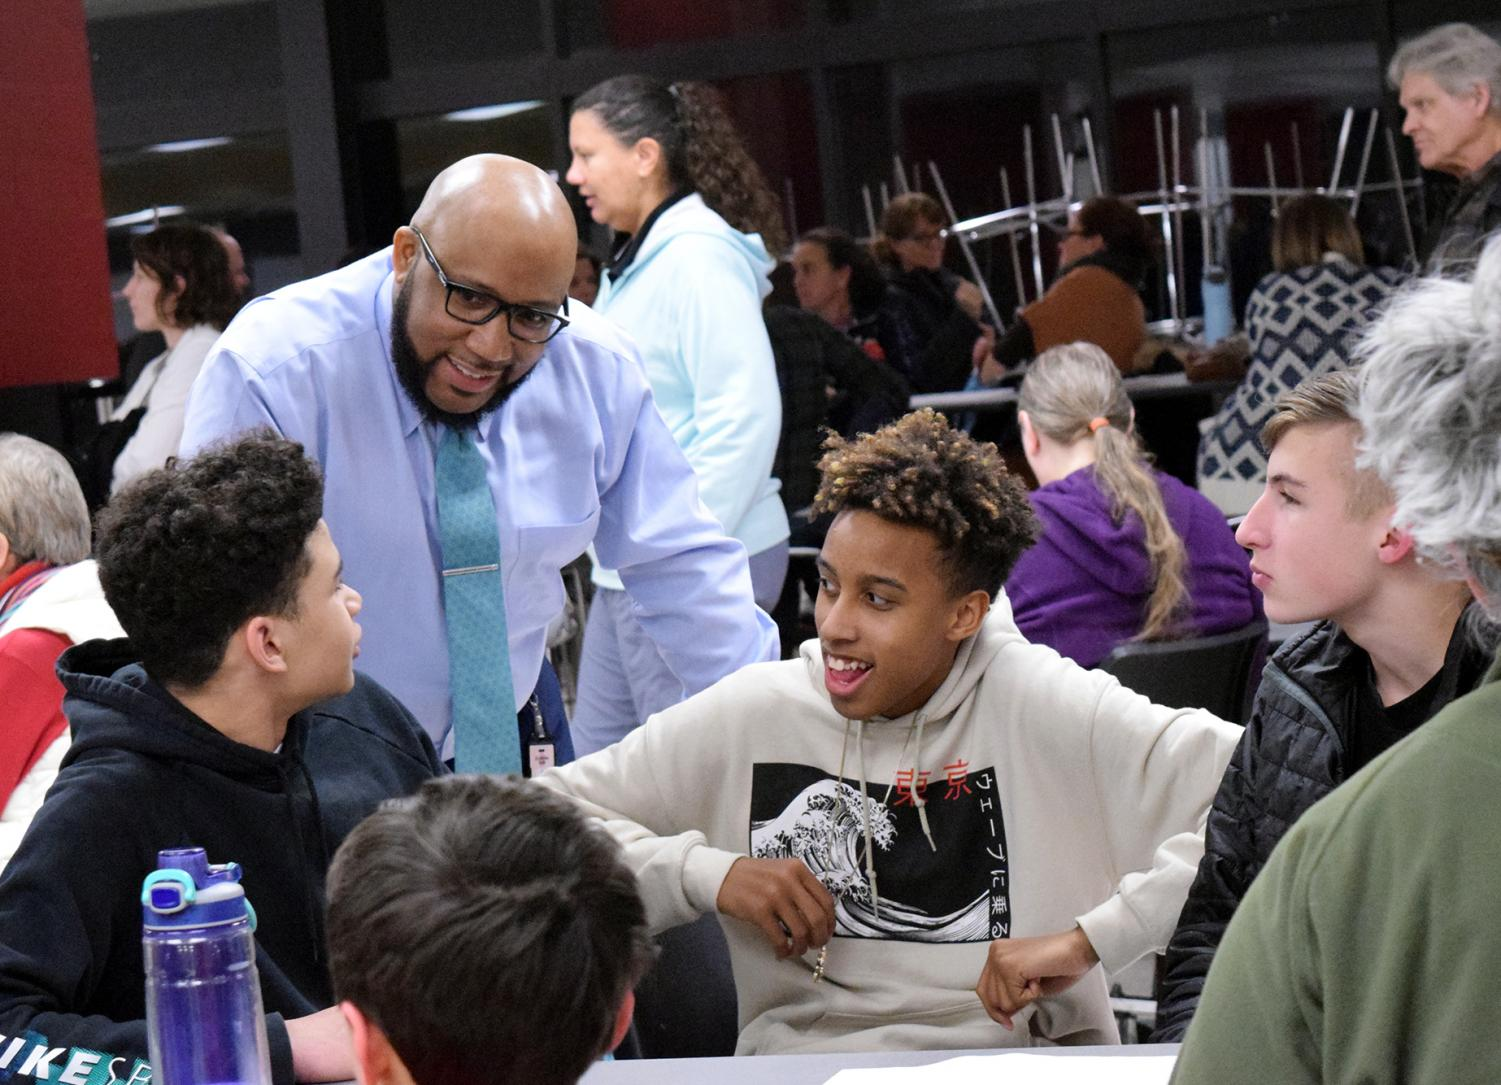 Interacting+with+students%2C+Superintendent+Anthony+Lewis+gets+input+from+those+who+attended+the+Community+Safety+Meeting+addressing+weapons+brought+on+Lawrence+High+campus+on+Feb.+21.+Lewis%27+goal+of+the+meeting+was+to+reassure+parents+that+the+safety+of+staff+and+students+was+the+most+important.